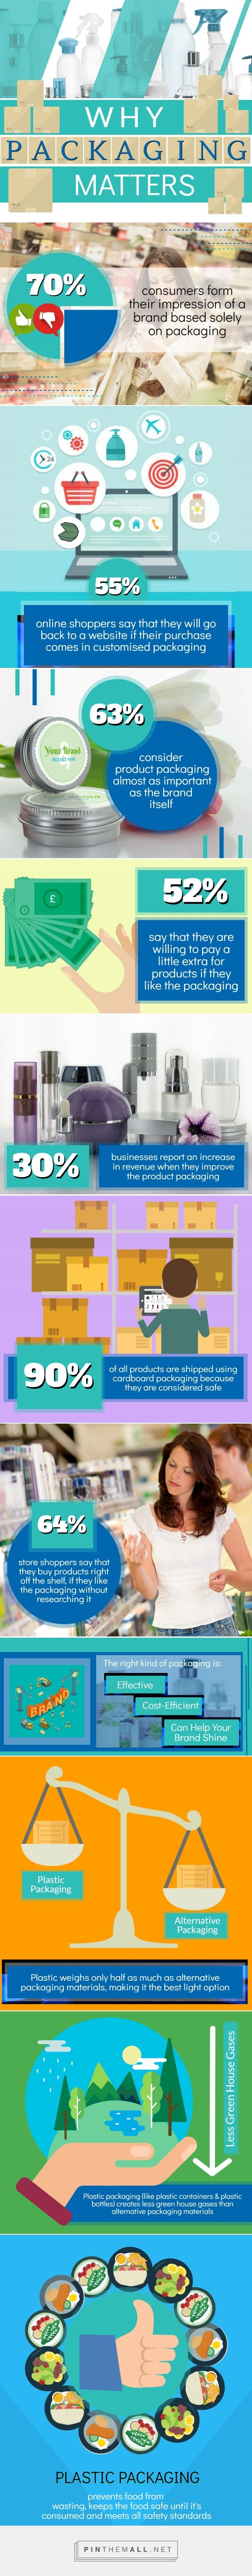 Read about the power of packaging you probably did not know about - exclusive article by Marina Iermolaieva - http://www.packagingoftheworld.com/2017/07/the-power-of-packaging-you-probably-did.html